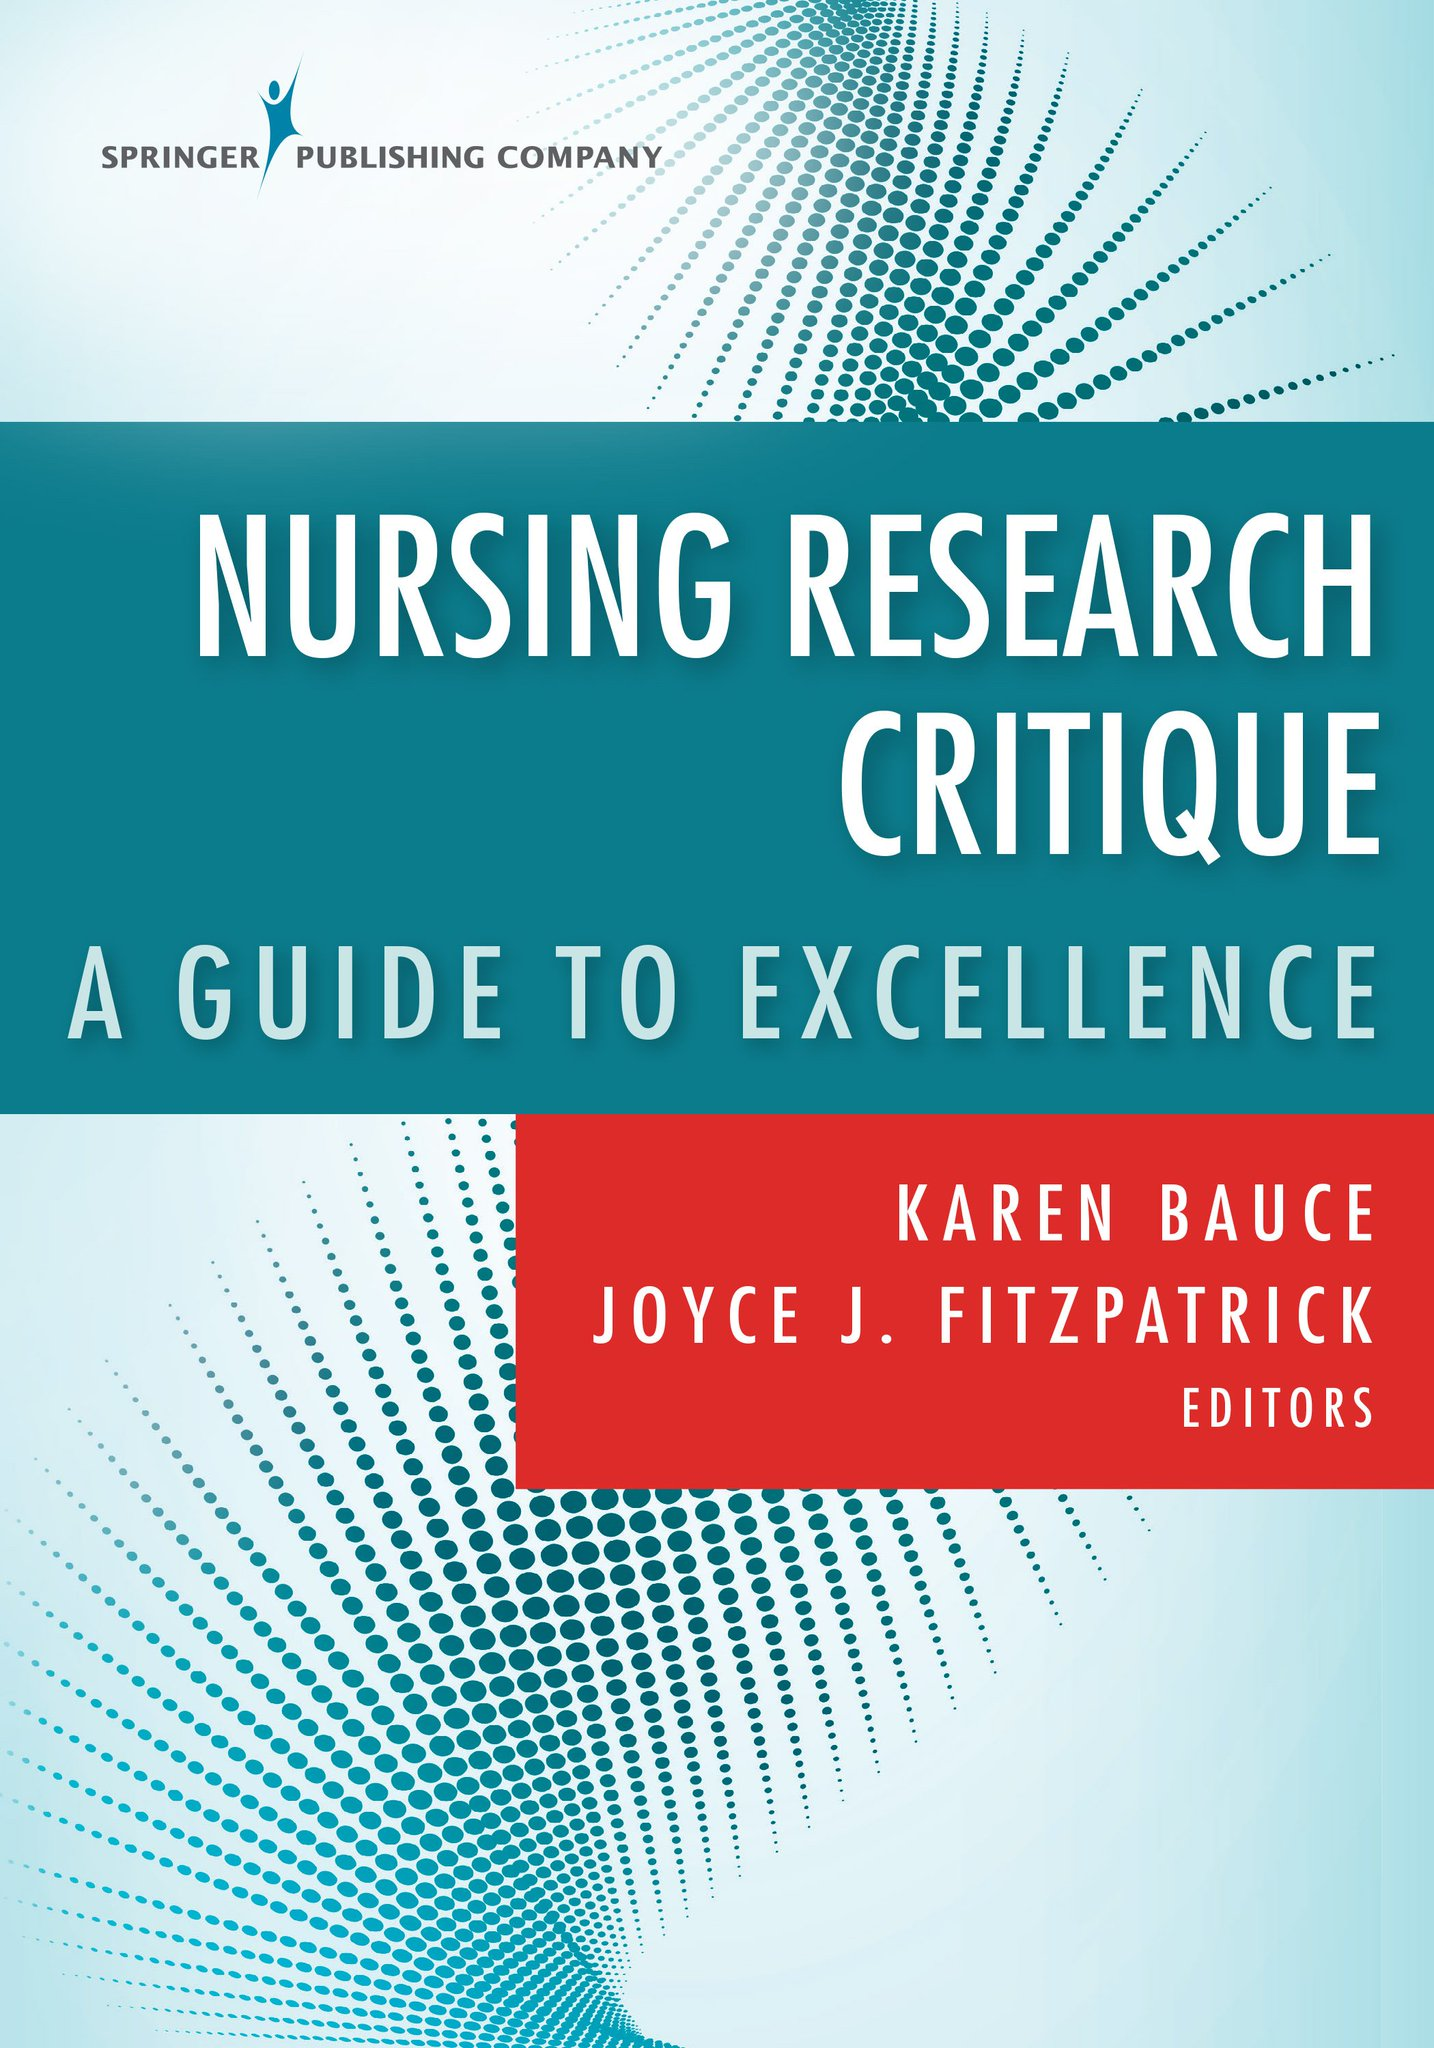 critiquing a nursing research article Most cited applied nursing research articles the most cited articles published since 2015, extracted from scopus  the effectiveness of a pressure ulcer intervention program on the prevalence of hospital acquired pressure ulcers: controlled before and after study.